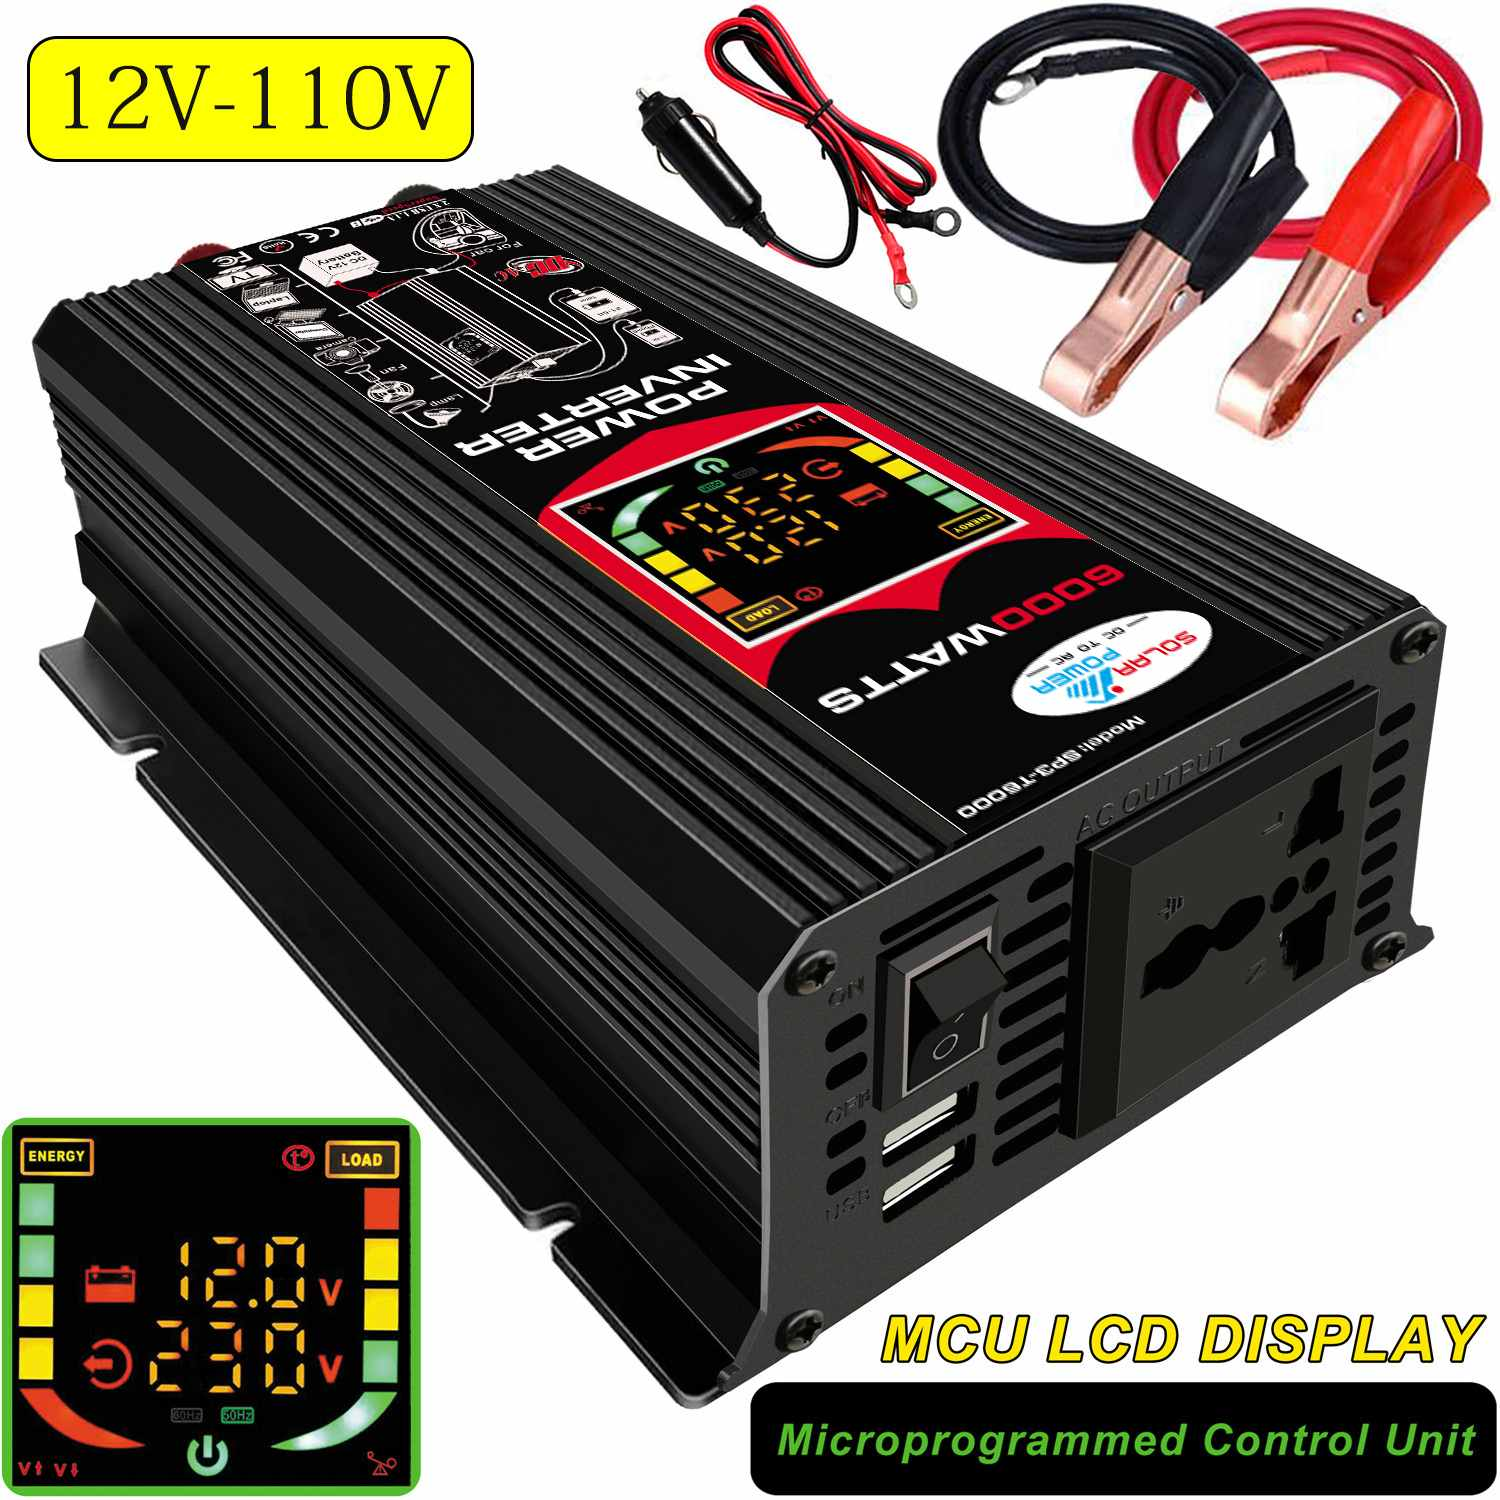 6000W Car Power Inverter Solar Panel Battery Modified Sine Wave Inverter LCD Display Cooling Fan Dual USB Ports 110V/220V image